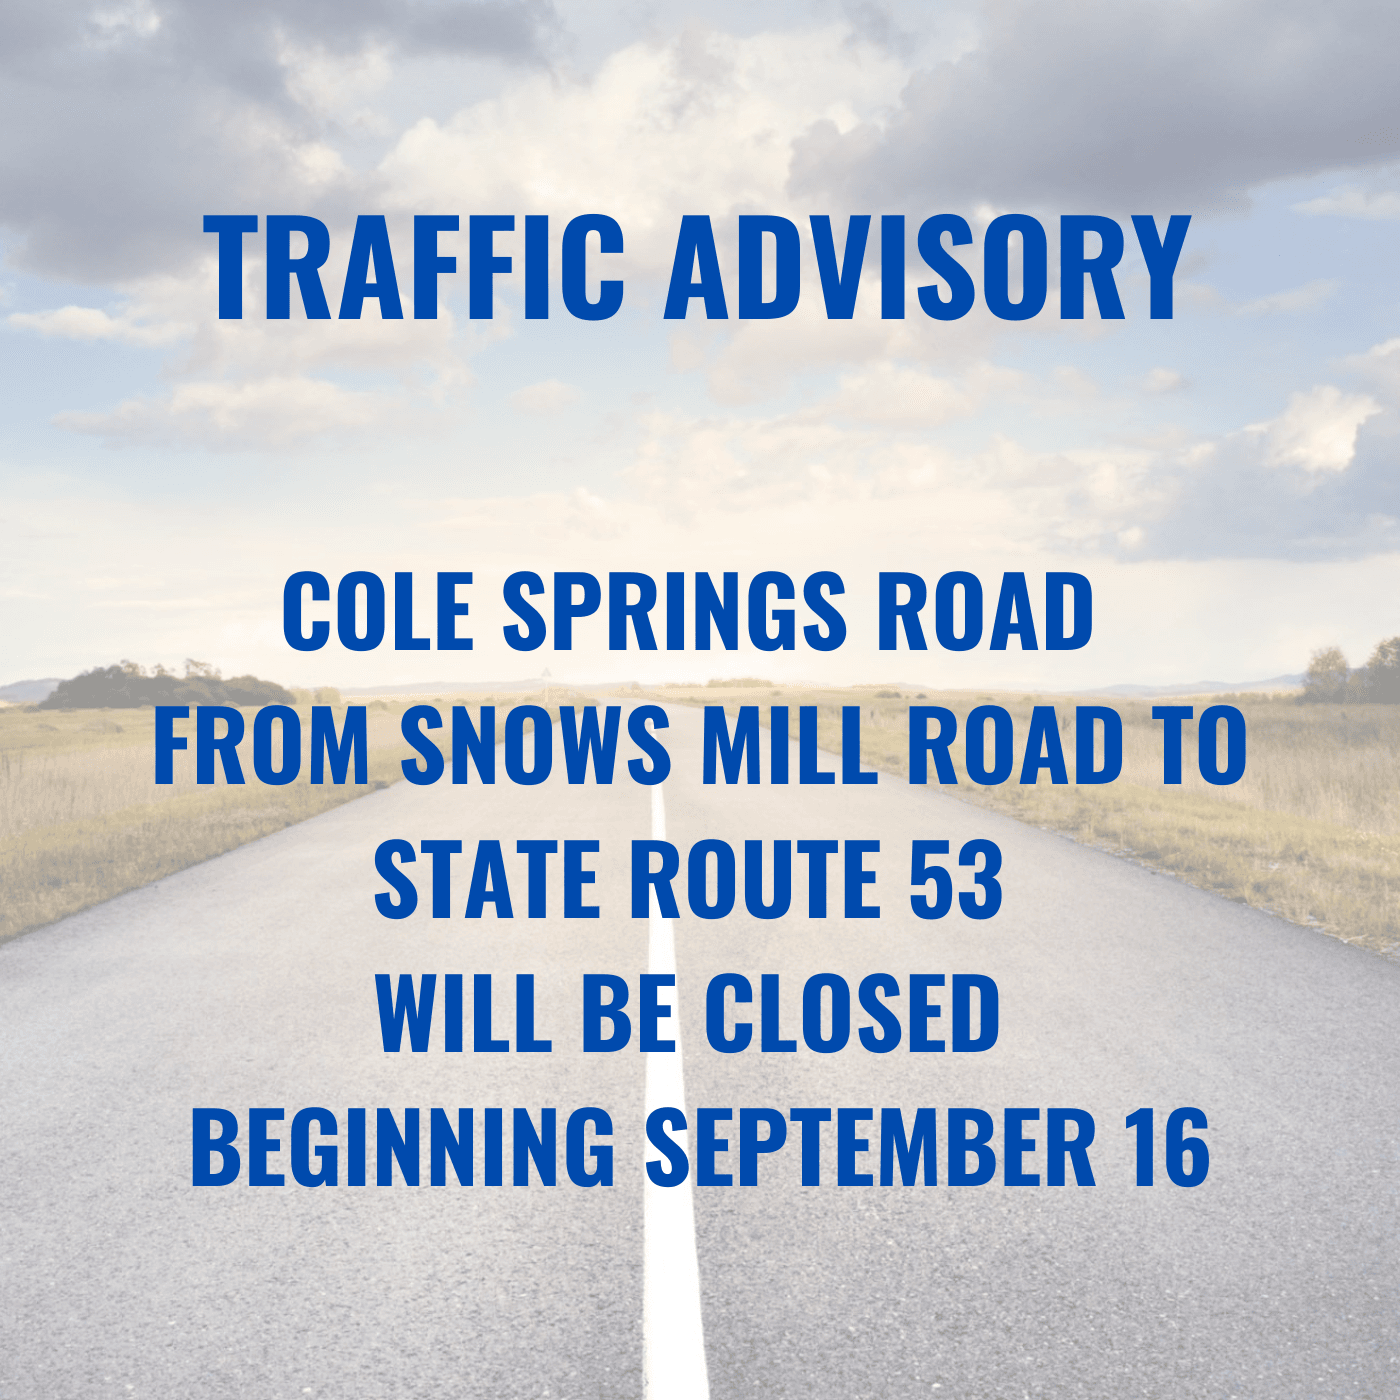 Traffic Advisory -Cole Springs Road Closed Between Snow Mill and State Route 53